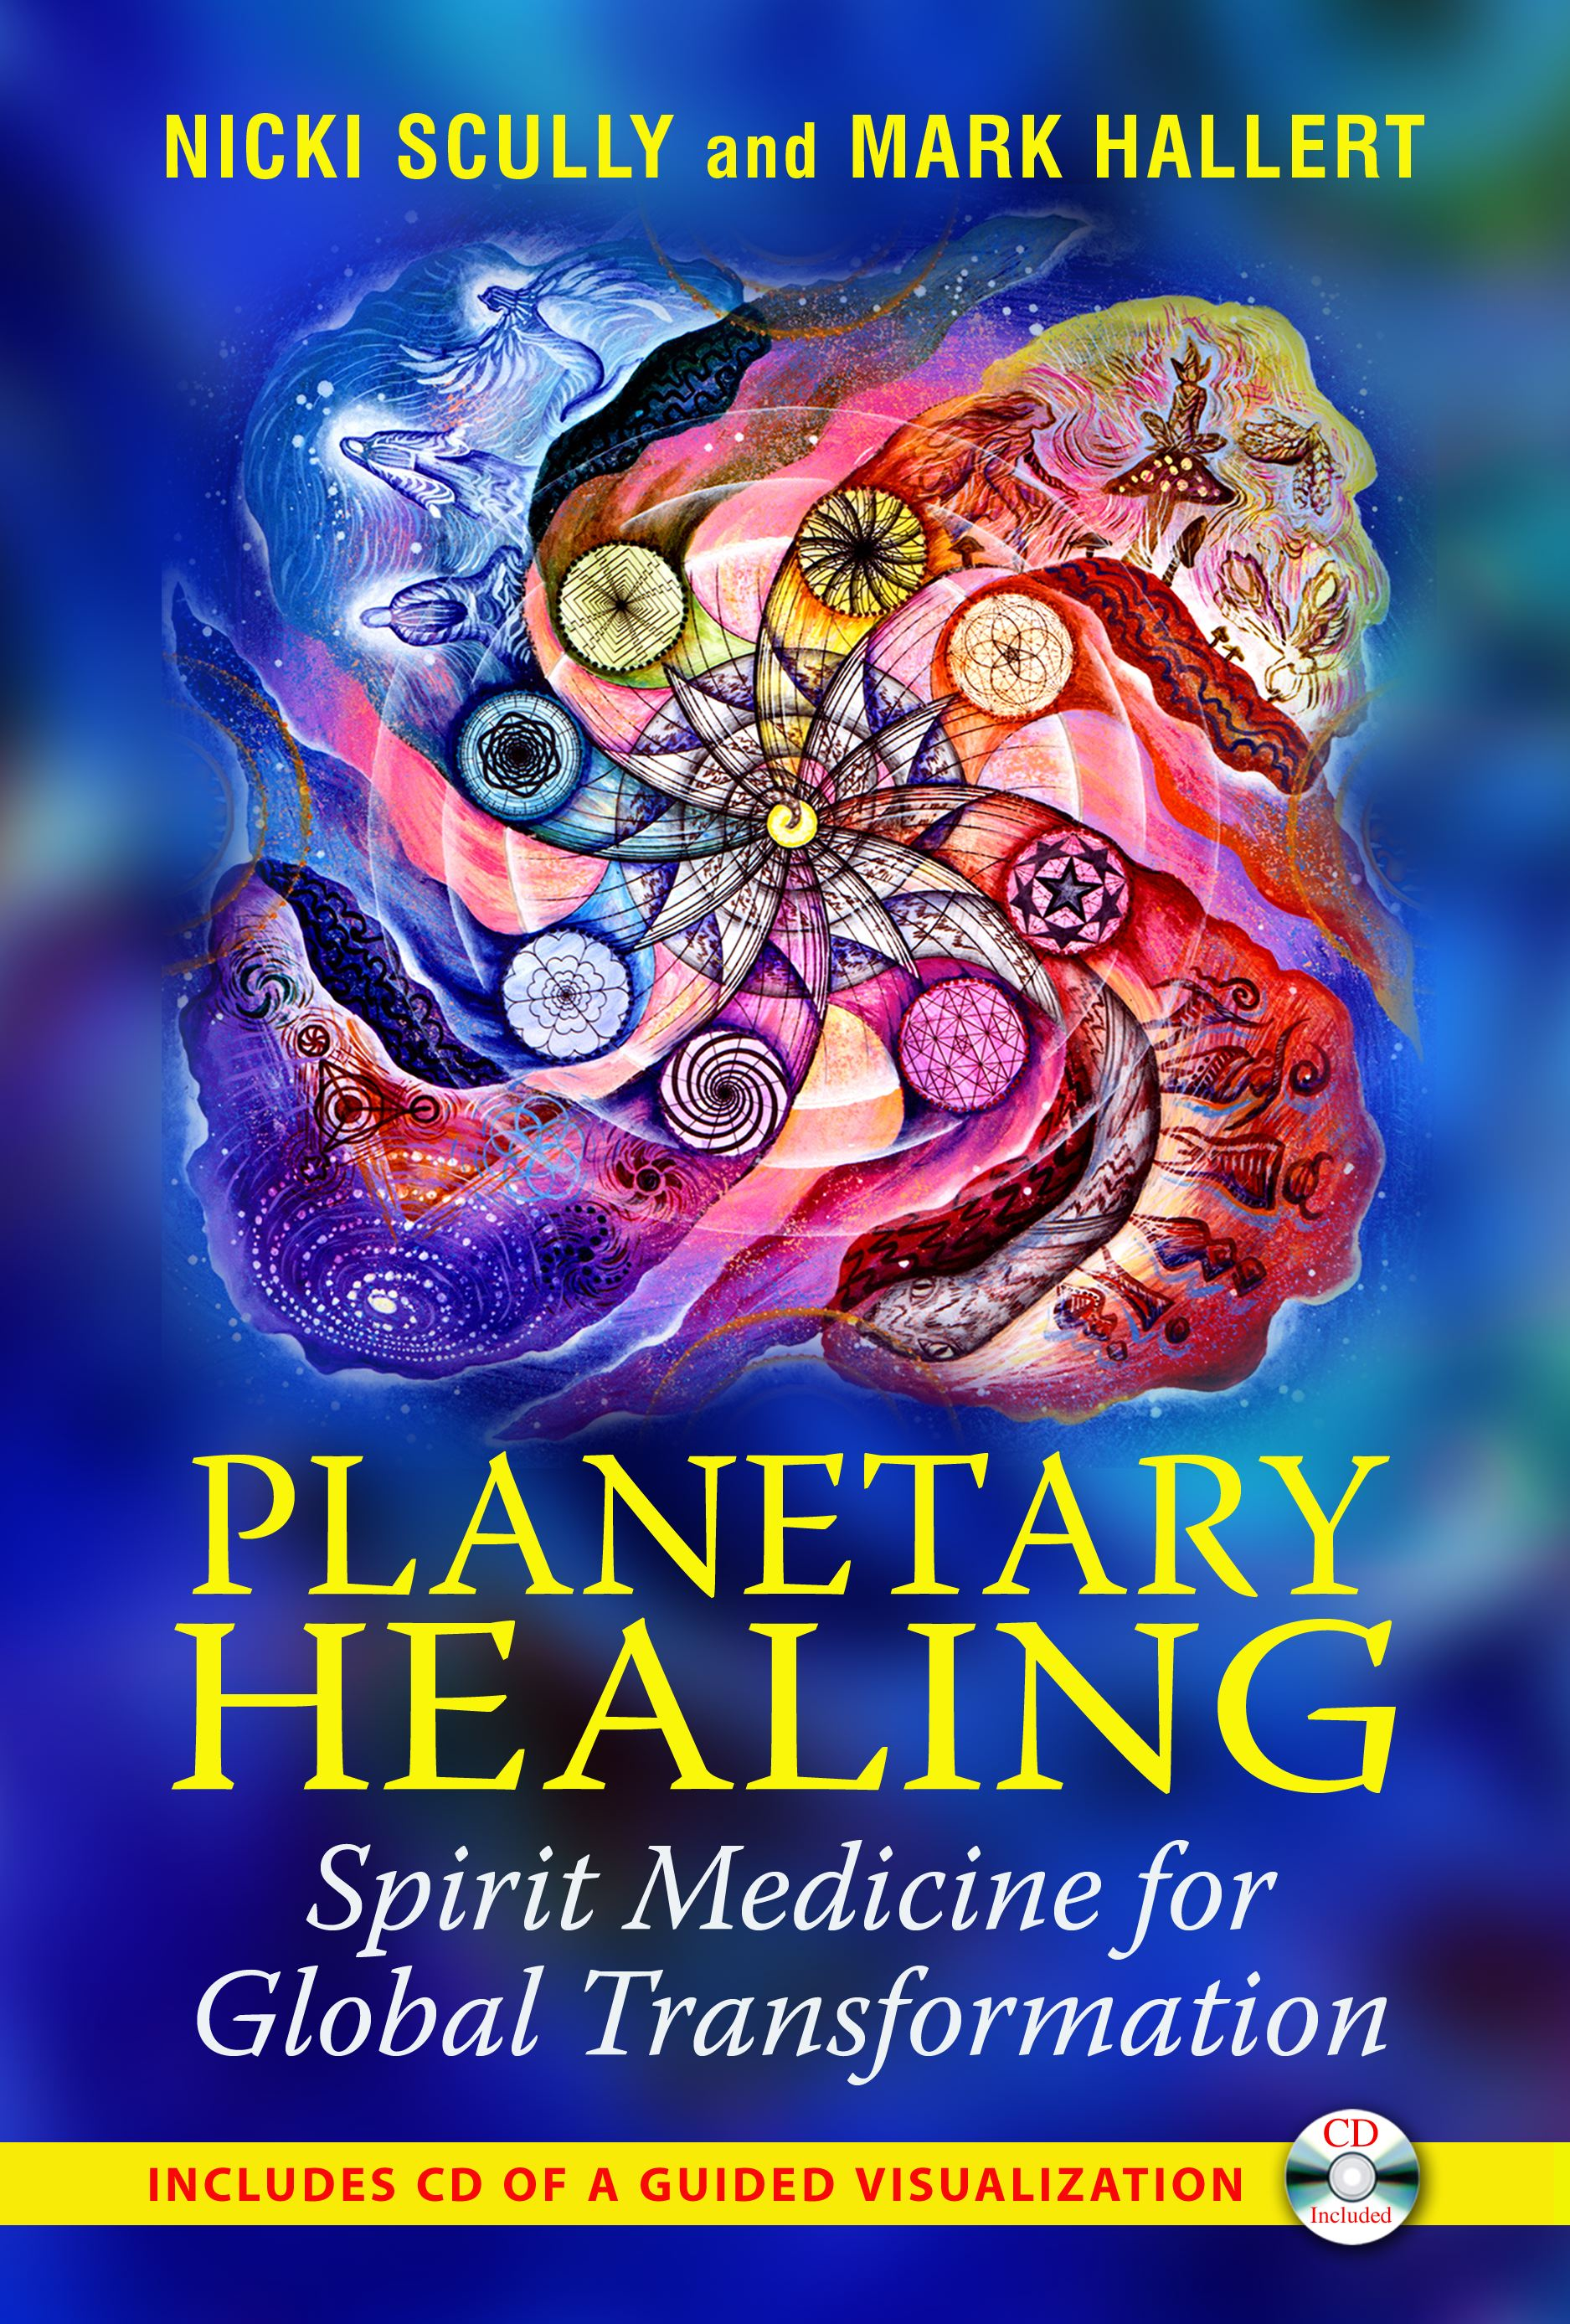 Planetary Healing | Book by Nicki Scully, Mark Hallert